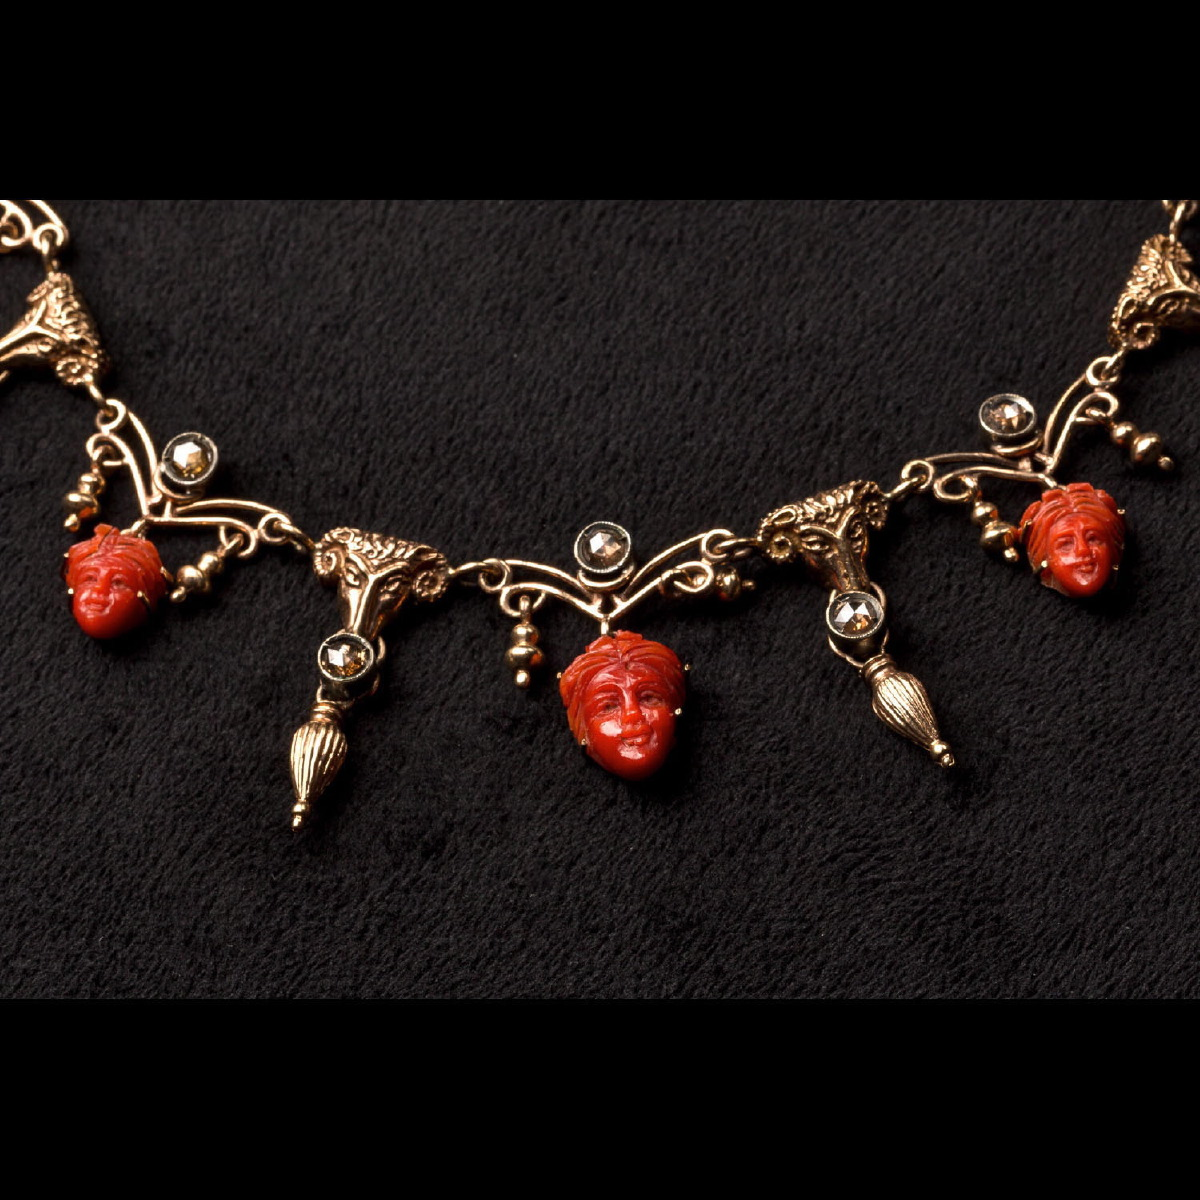 Photo of ancient-jewellery-diamonds-coral-galerie-golconda-ancient-jewelery-revival